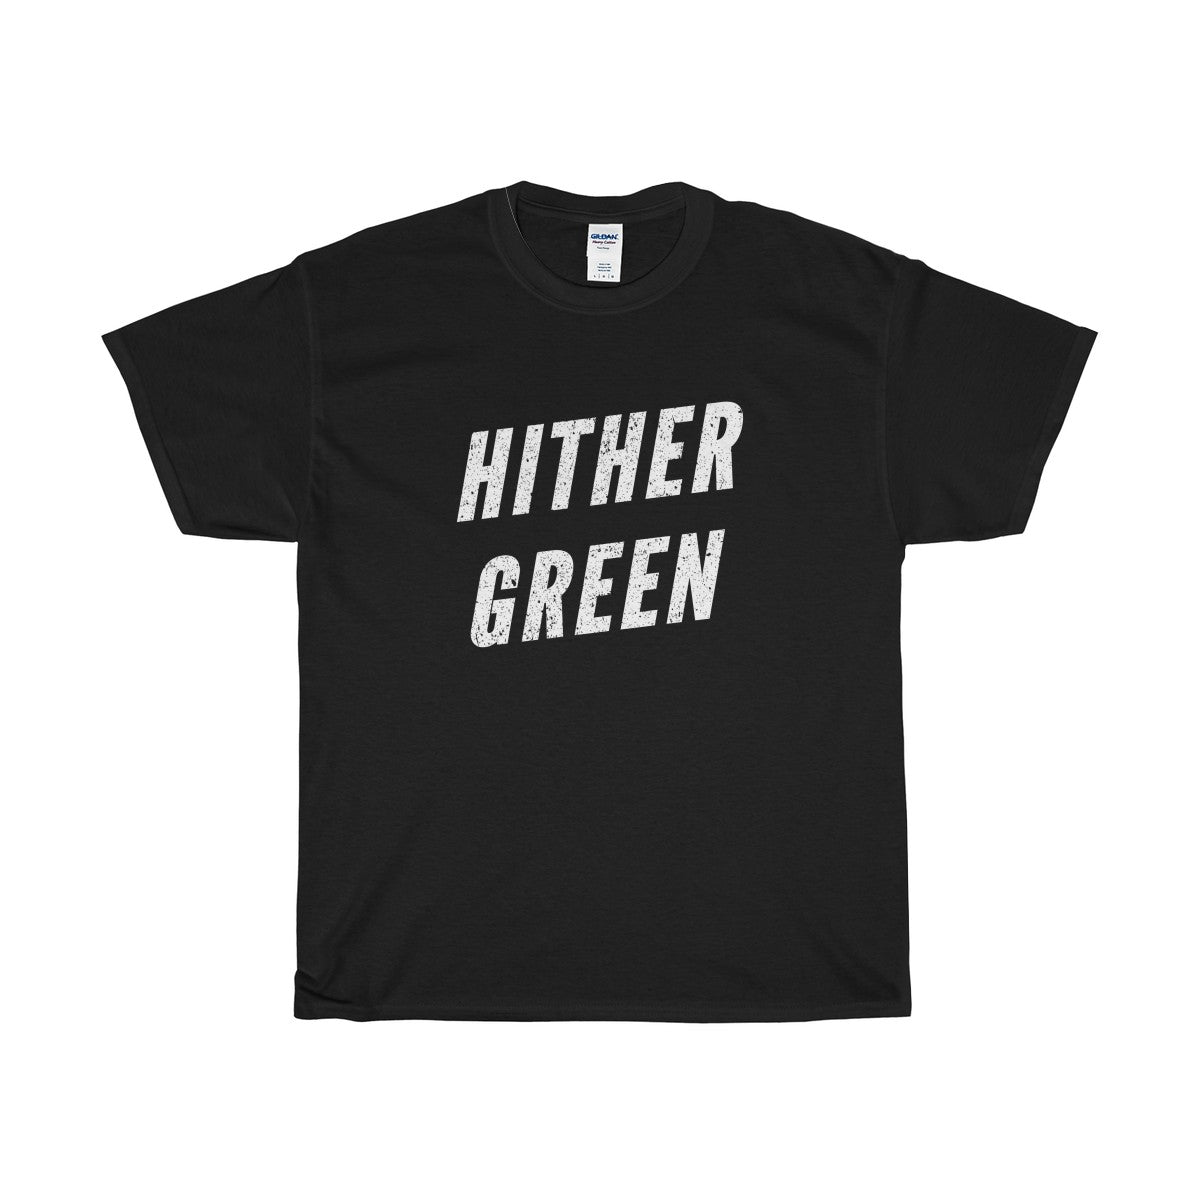 Hither Green T-Shirt